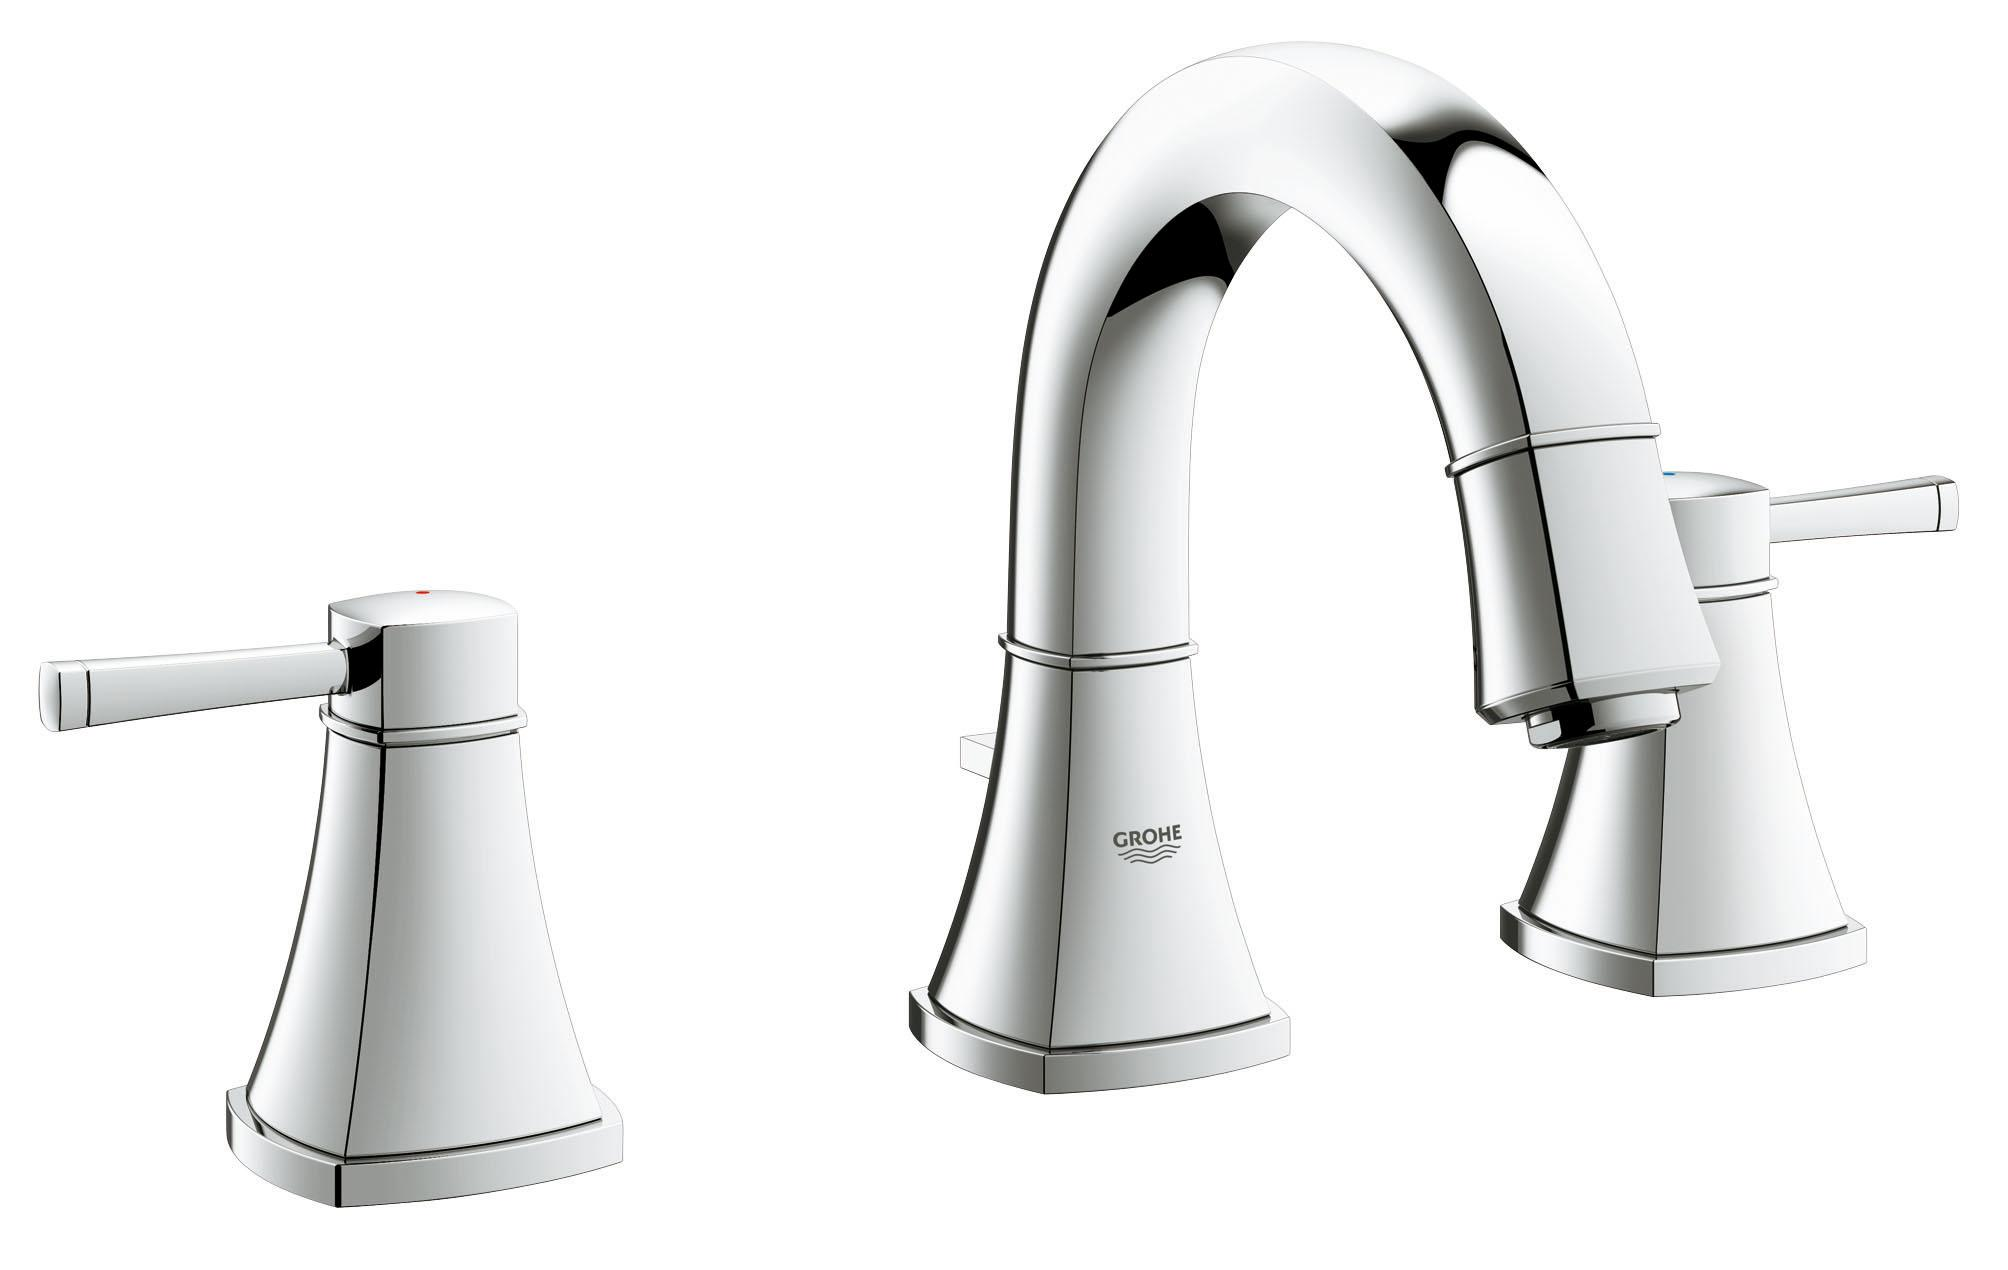 Grohe bathroom accessories - Grohe Bathroom Accessories Rinet Com